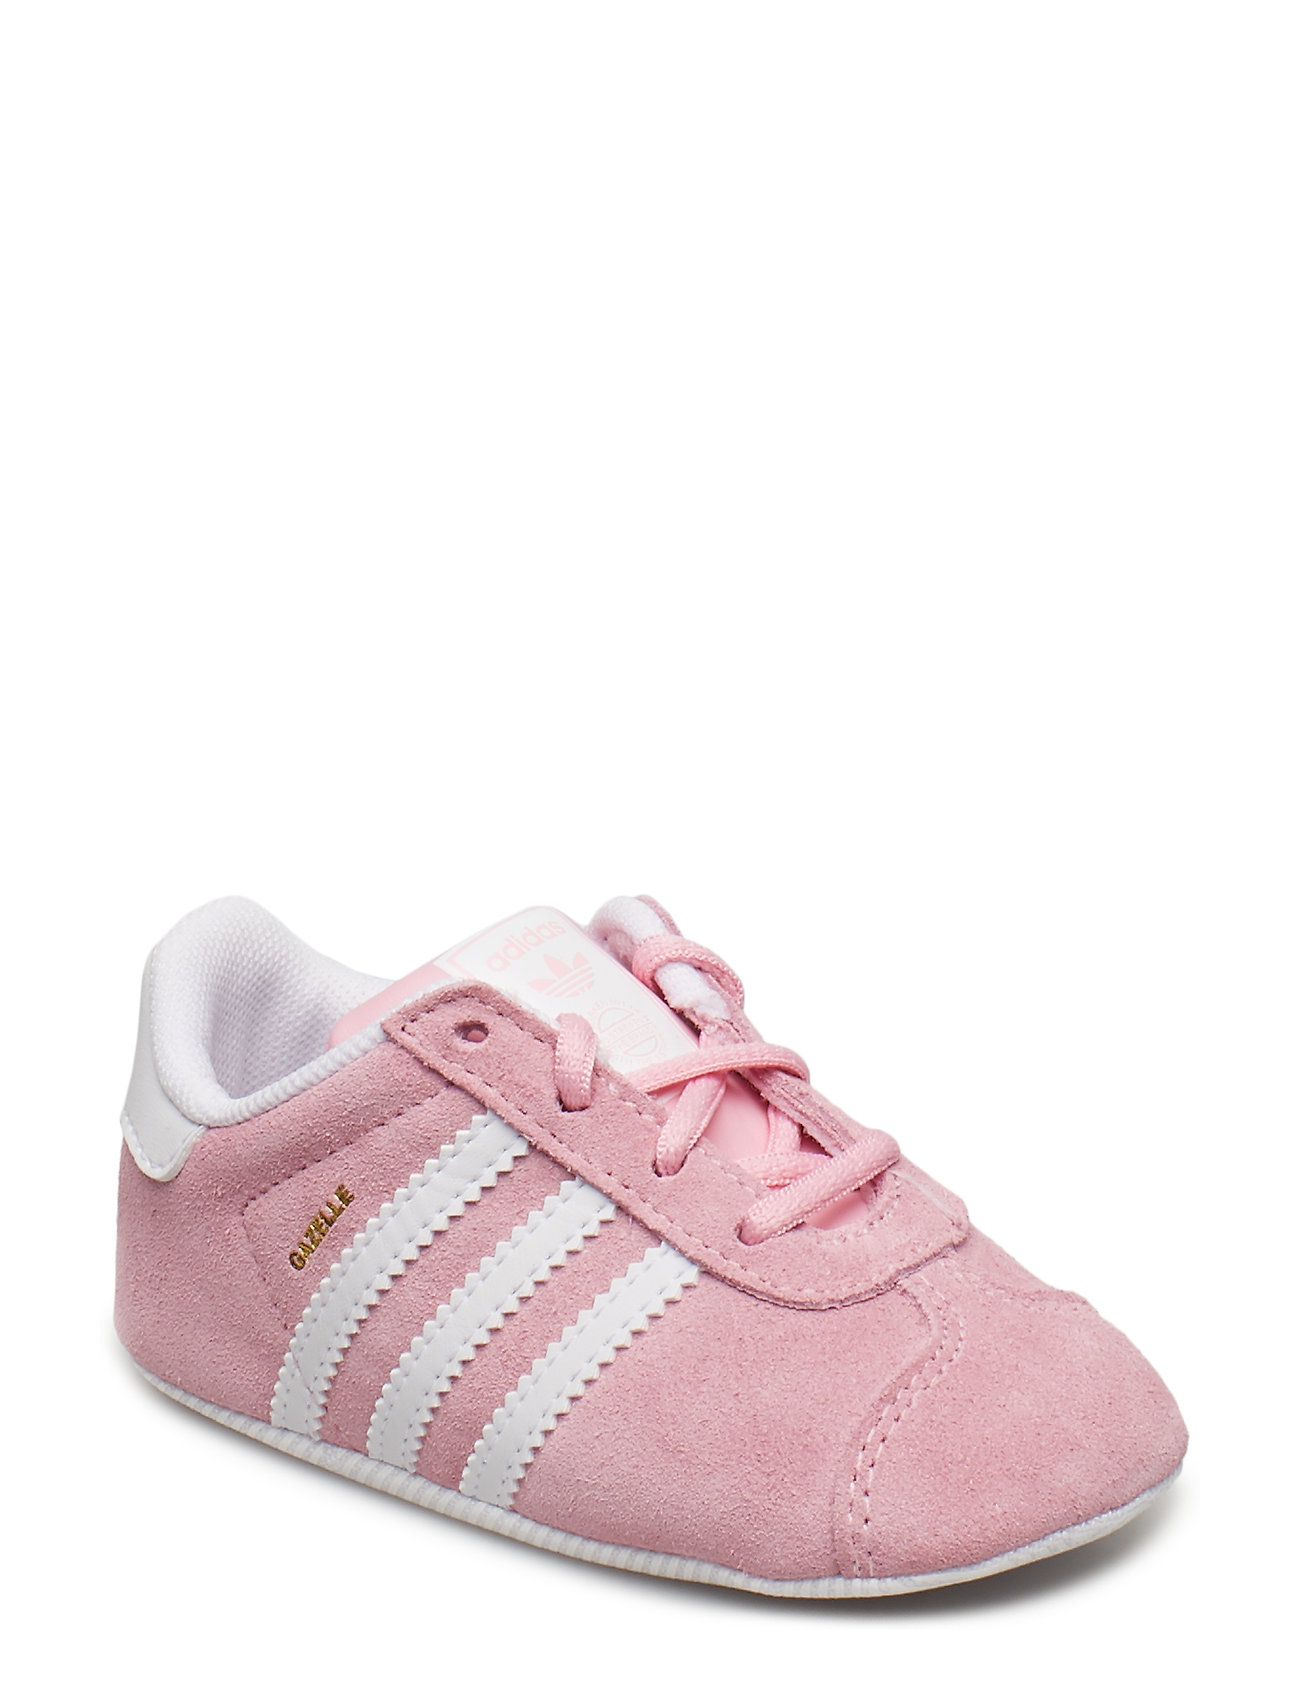 adidas Originals GAZELLE CRIB - TRUPNK/FTWWHT/GOLDMT